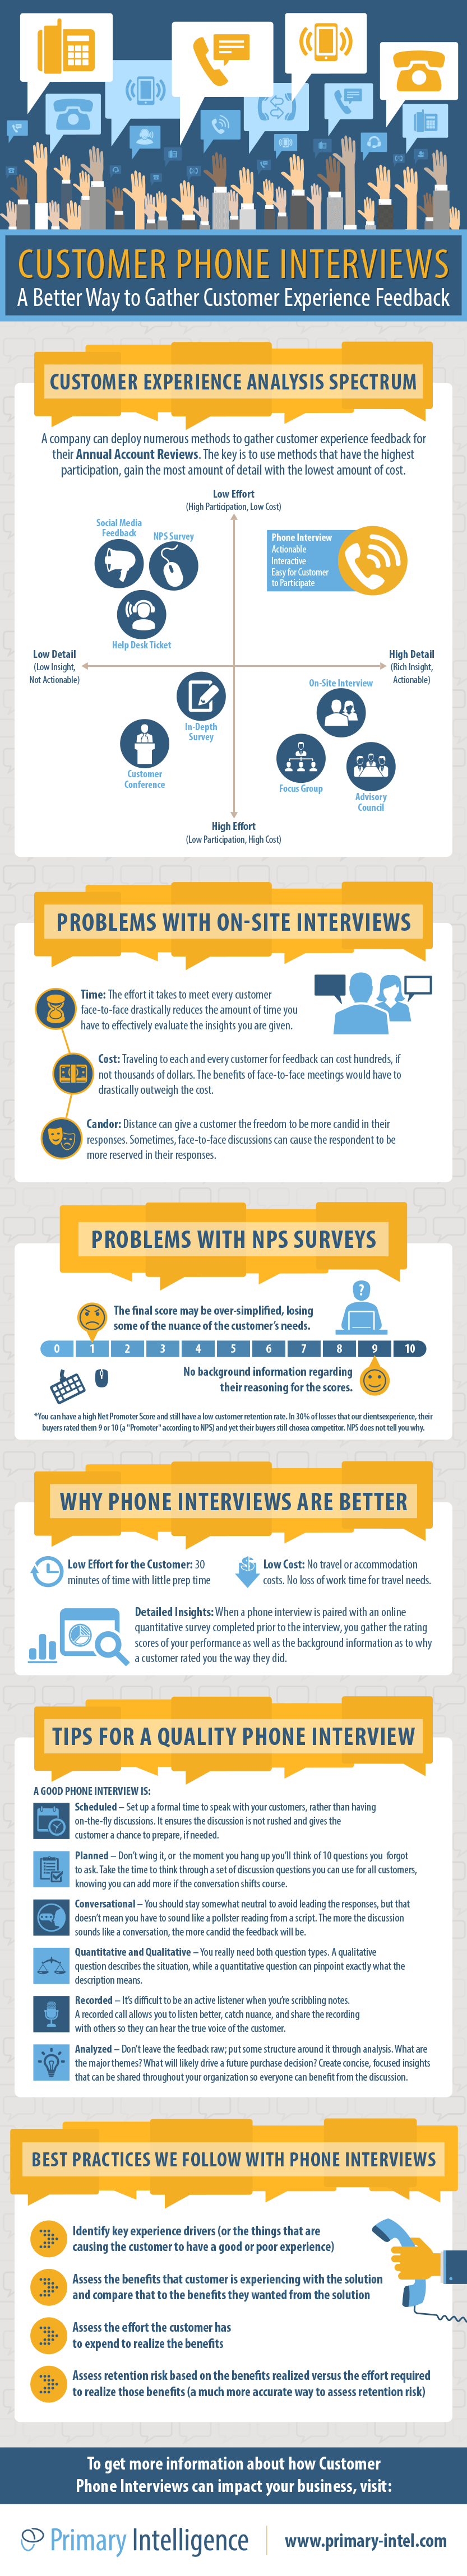 PI-Phone-Interviews infographic